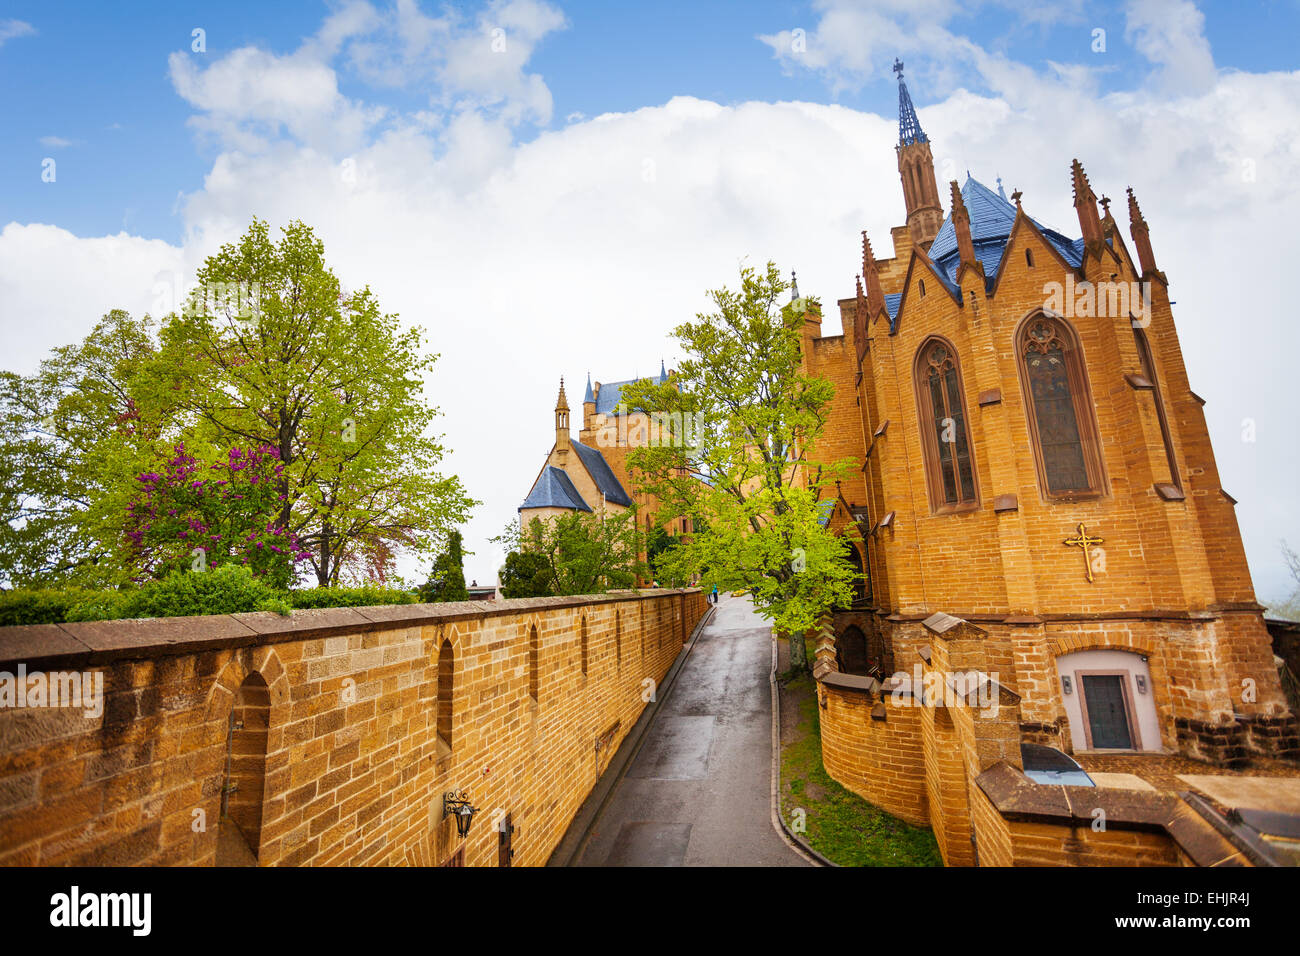 The beautiful Hohenzollern castle from inner yard - Stock Image